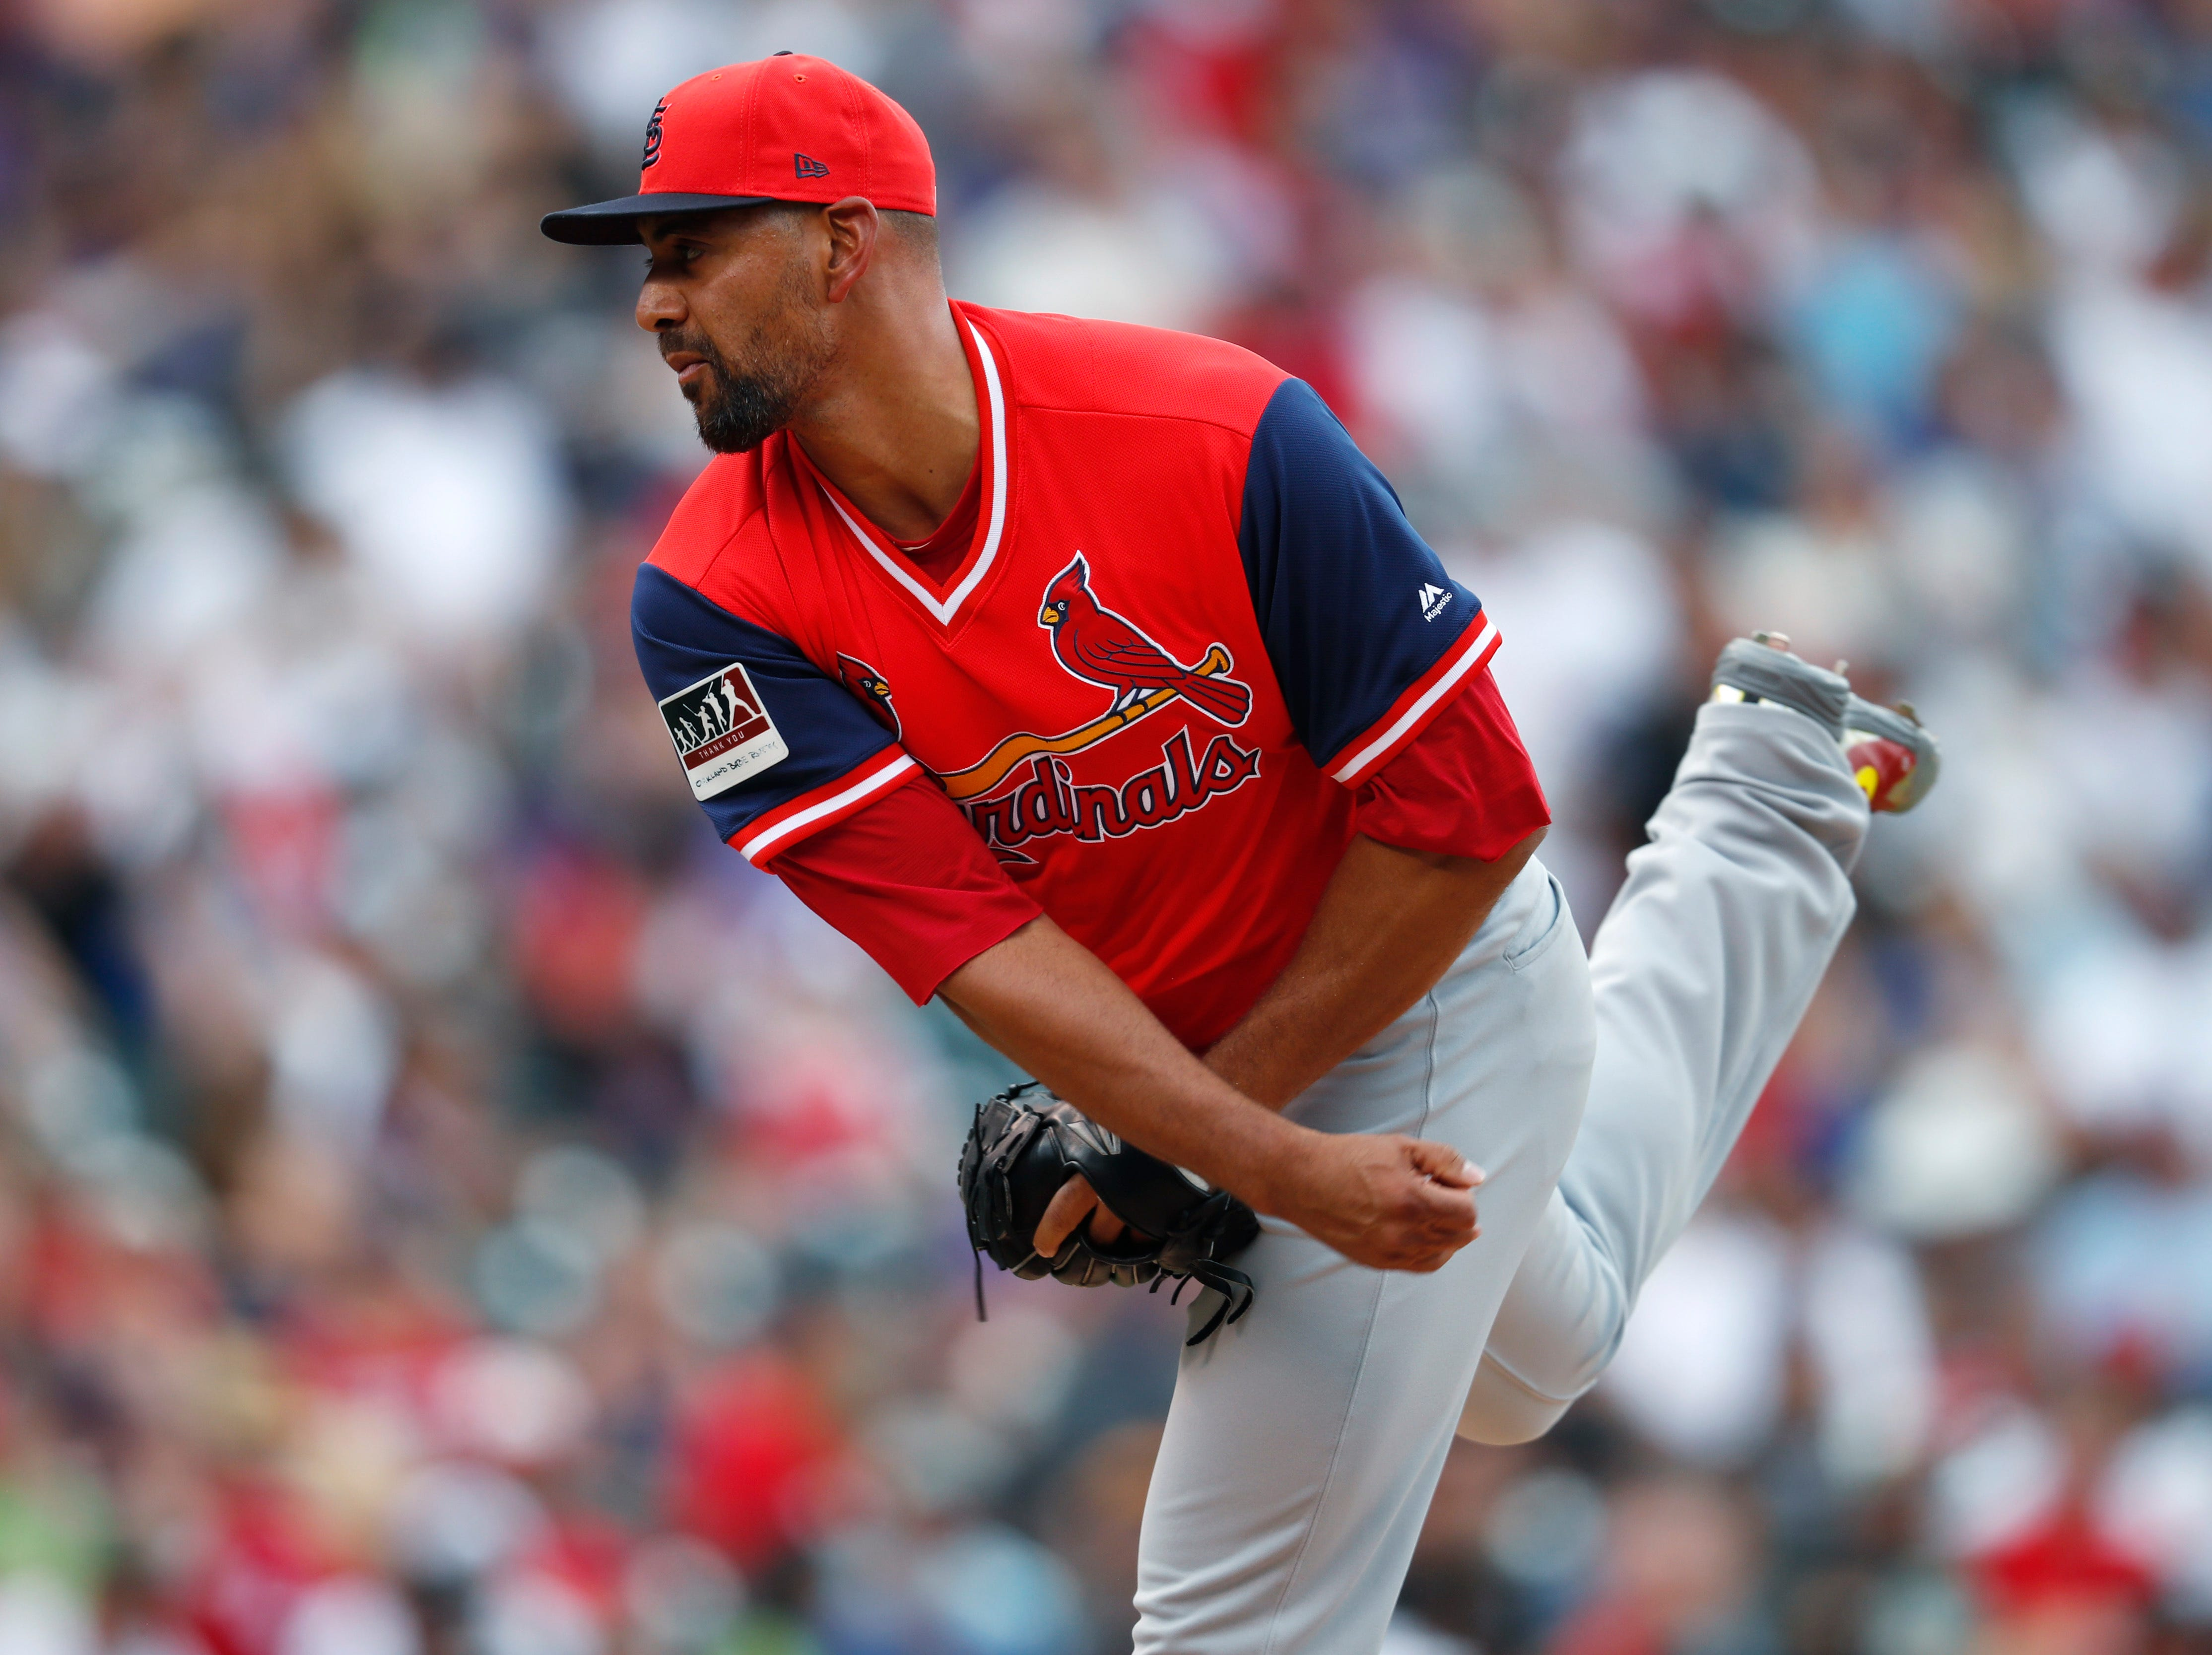 St. Louis Cardinals starting pitcher Tyson Ross works against the Colorado Rockies in the seventh inning of a game Sunday, Aug. 26, 2018, in Denver.